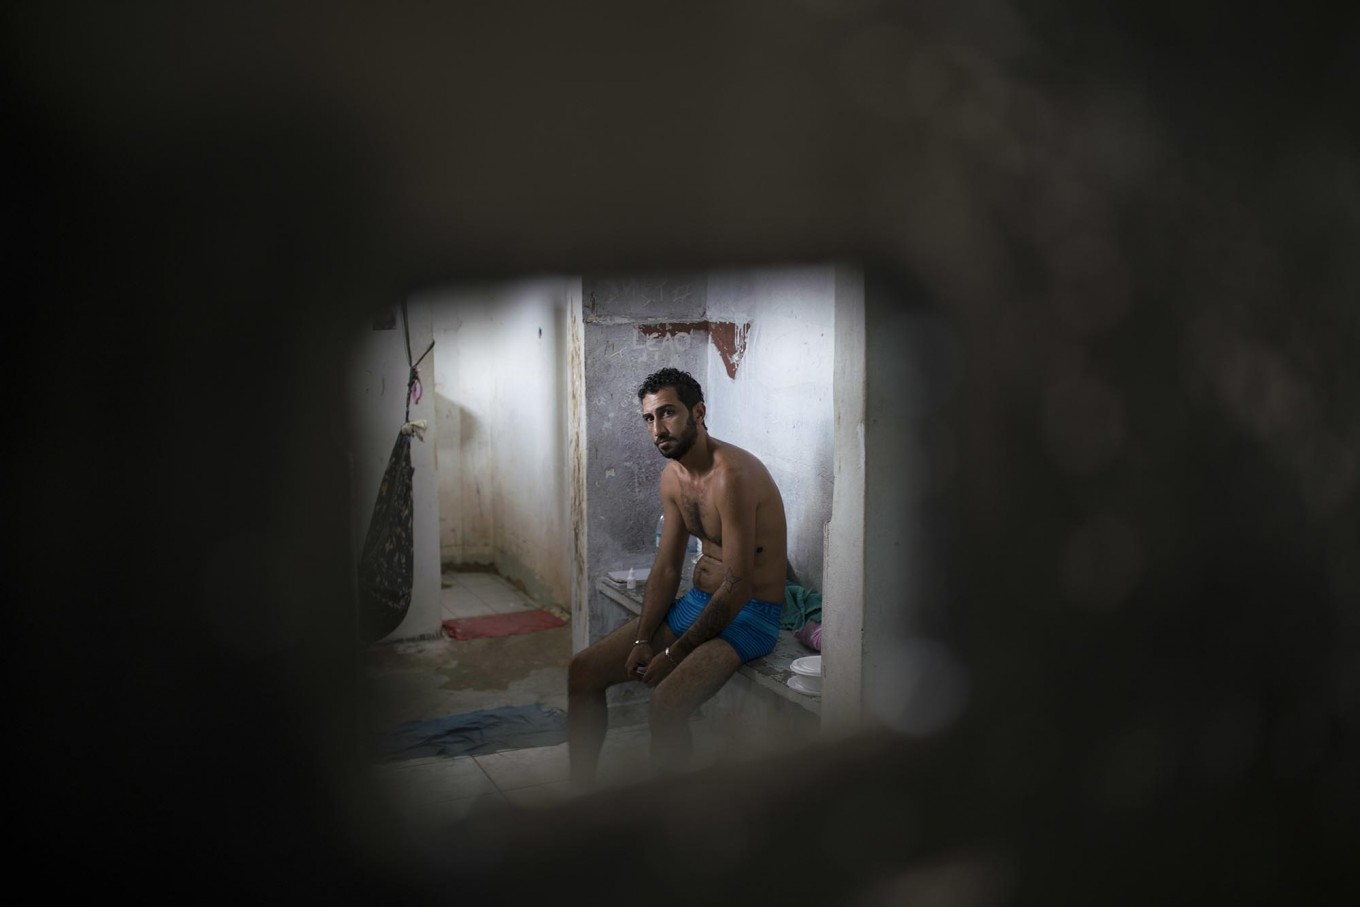 In this Feb. 2, 2017 photo, an inmate sits inside a cell separated from the main prison population, at the Monte Cristo agricultural penitentiary in Boa Vista, Brazil. Many inmates shouted that they need medical attention. AP Photo/Felipe Dana